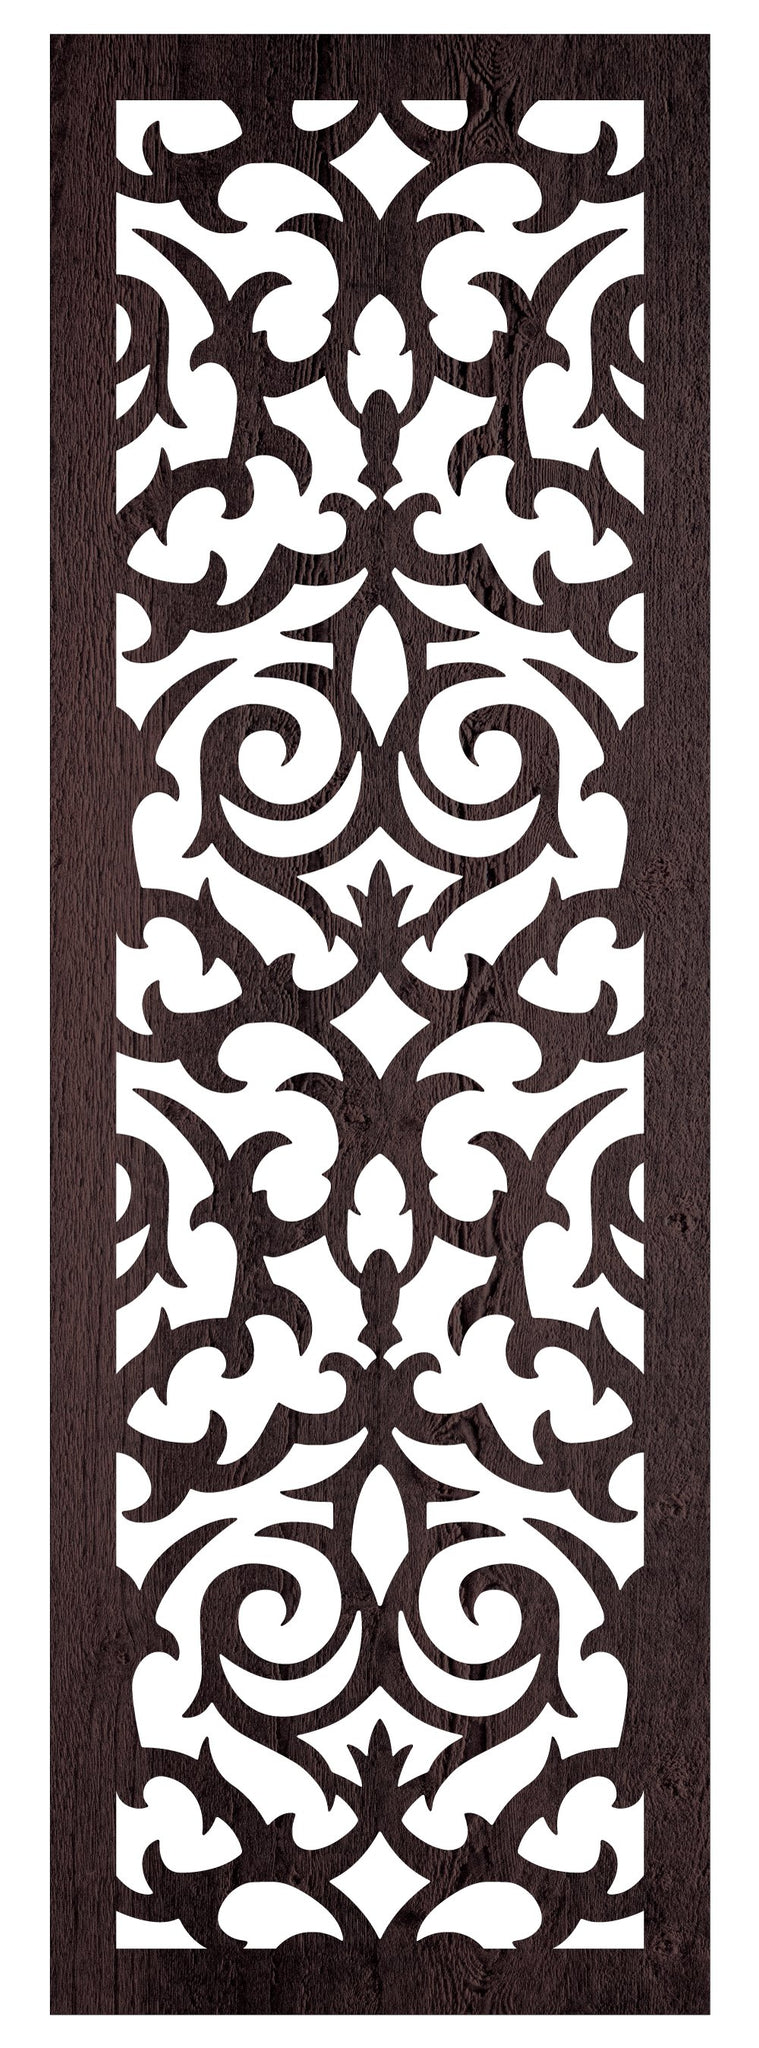 Morocco - 1800 x 600 mm - 9 mm Decorative Hardwood Screen - Living Effects